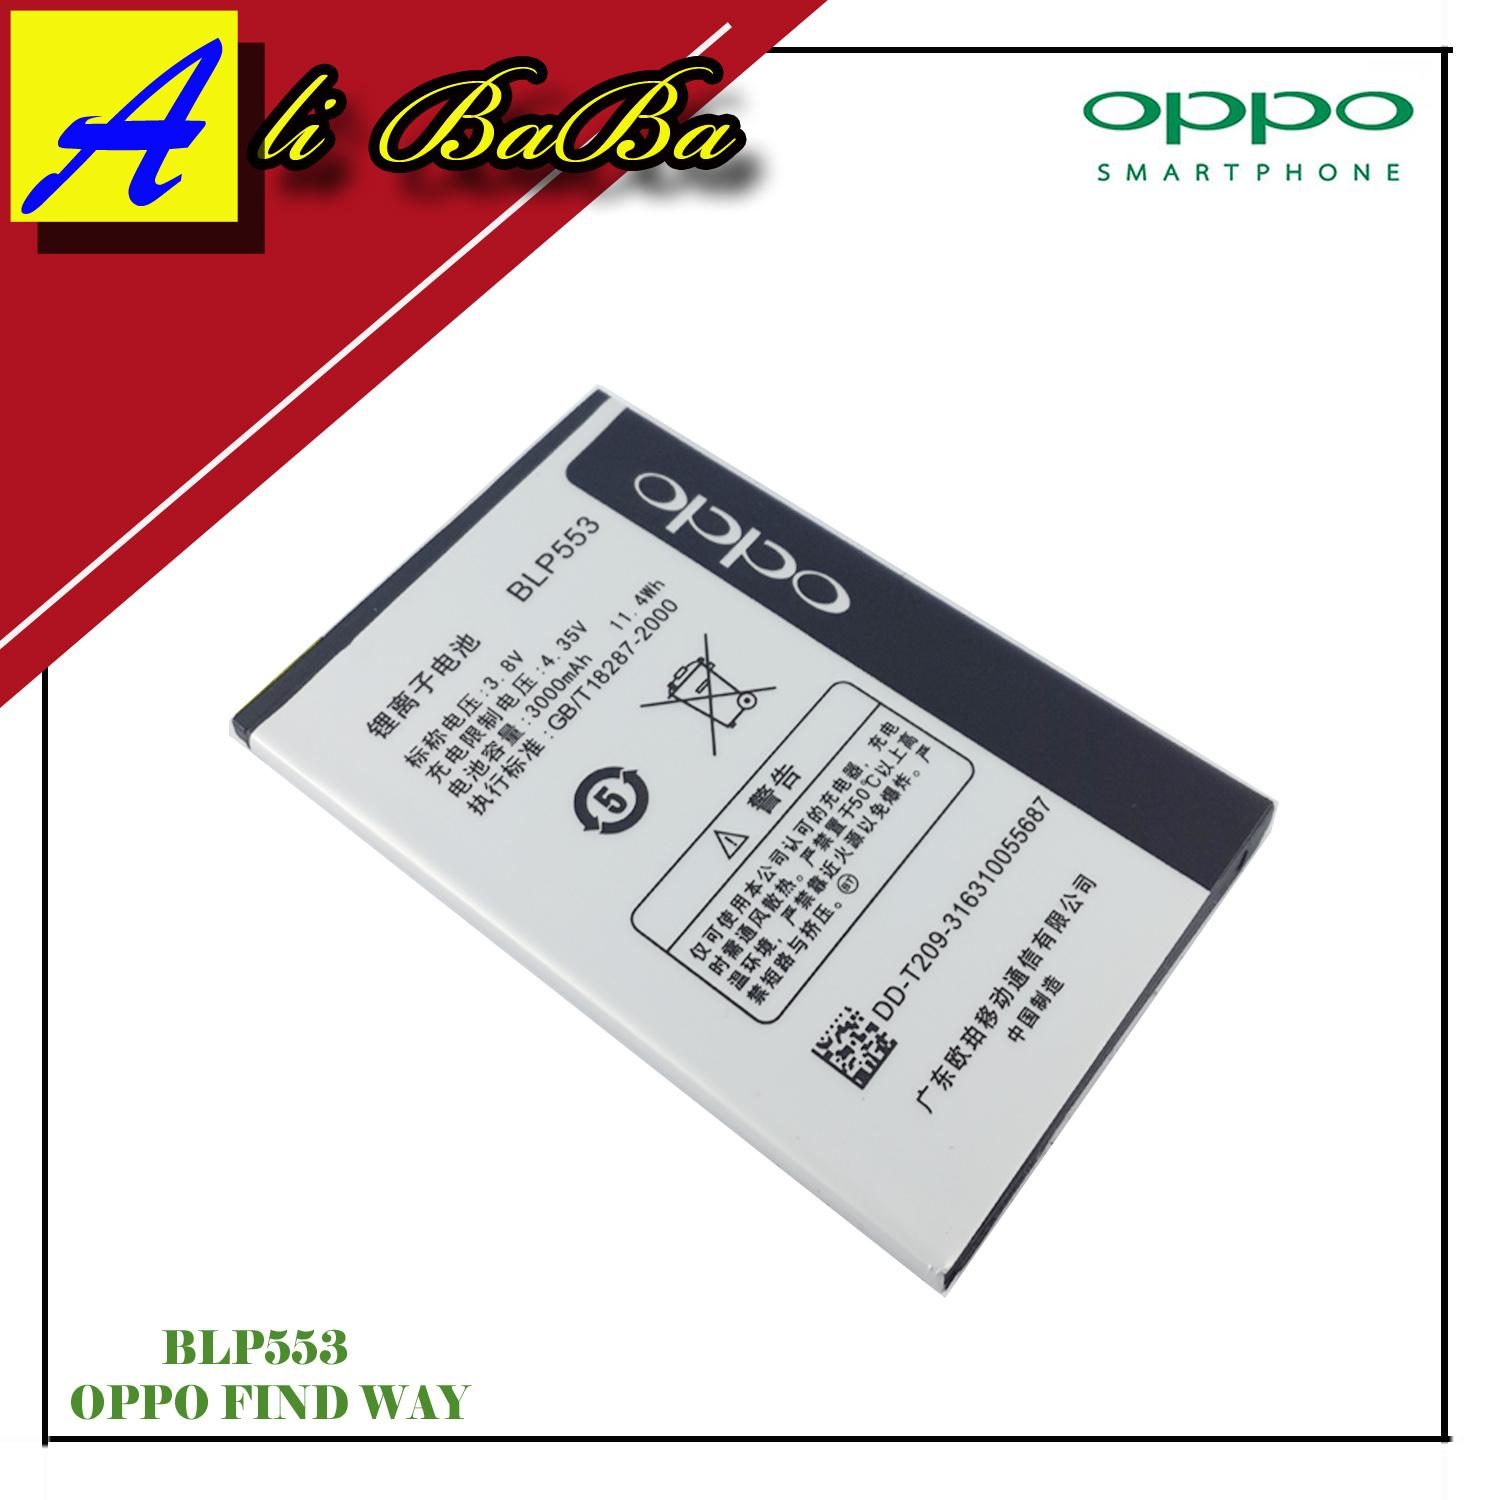 Baterai Handphone Oppo BLP553 Oppo Find Way Batre HP Battery Oppo